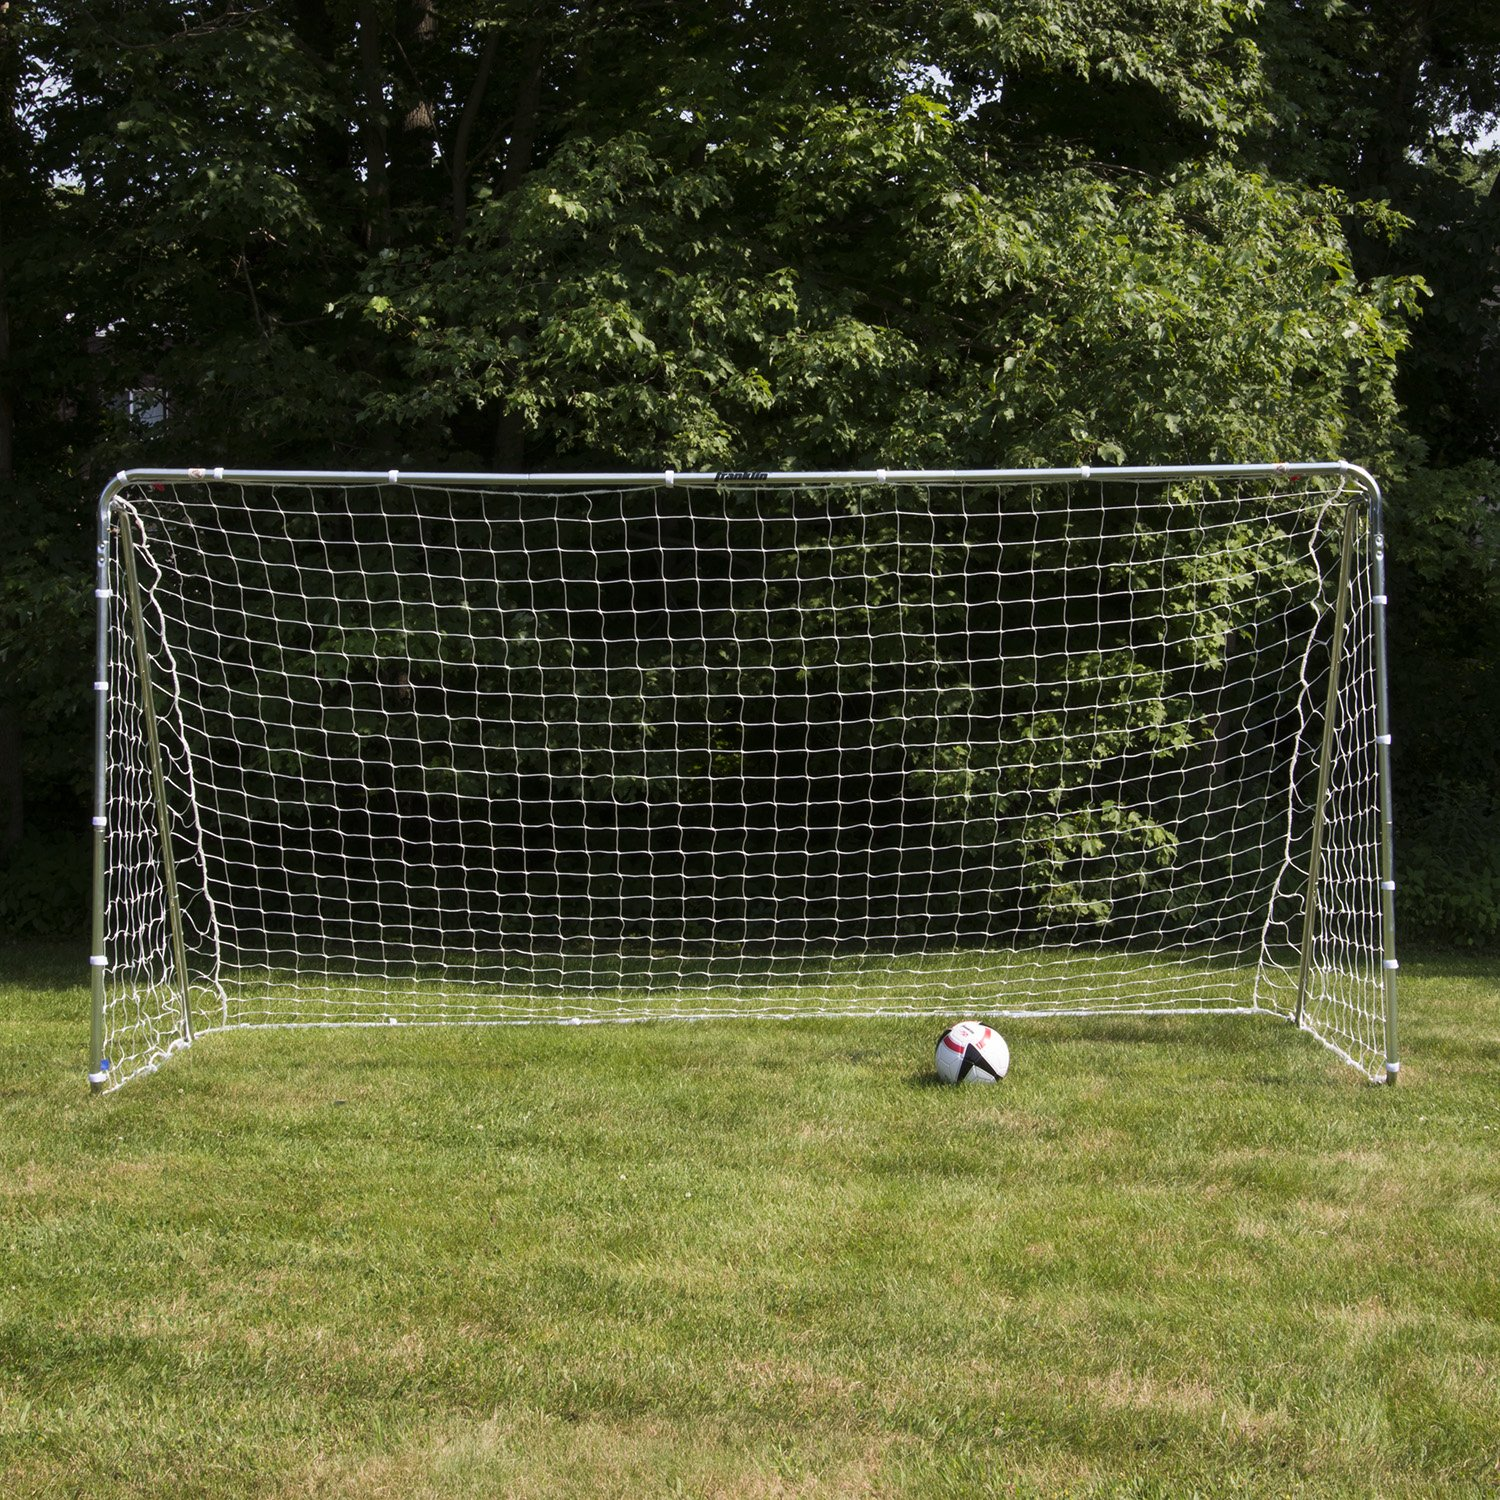 amazon com franklin sports competition steel soccer goal 12 x 6